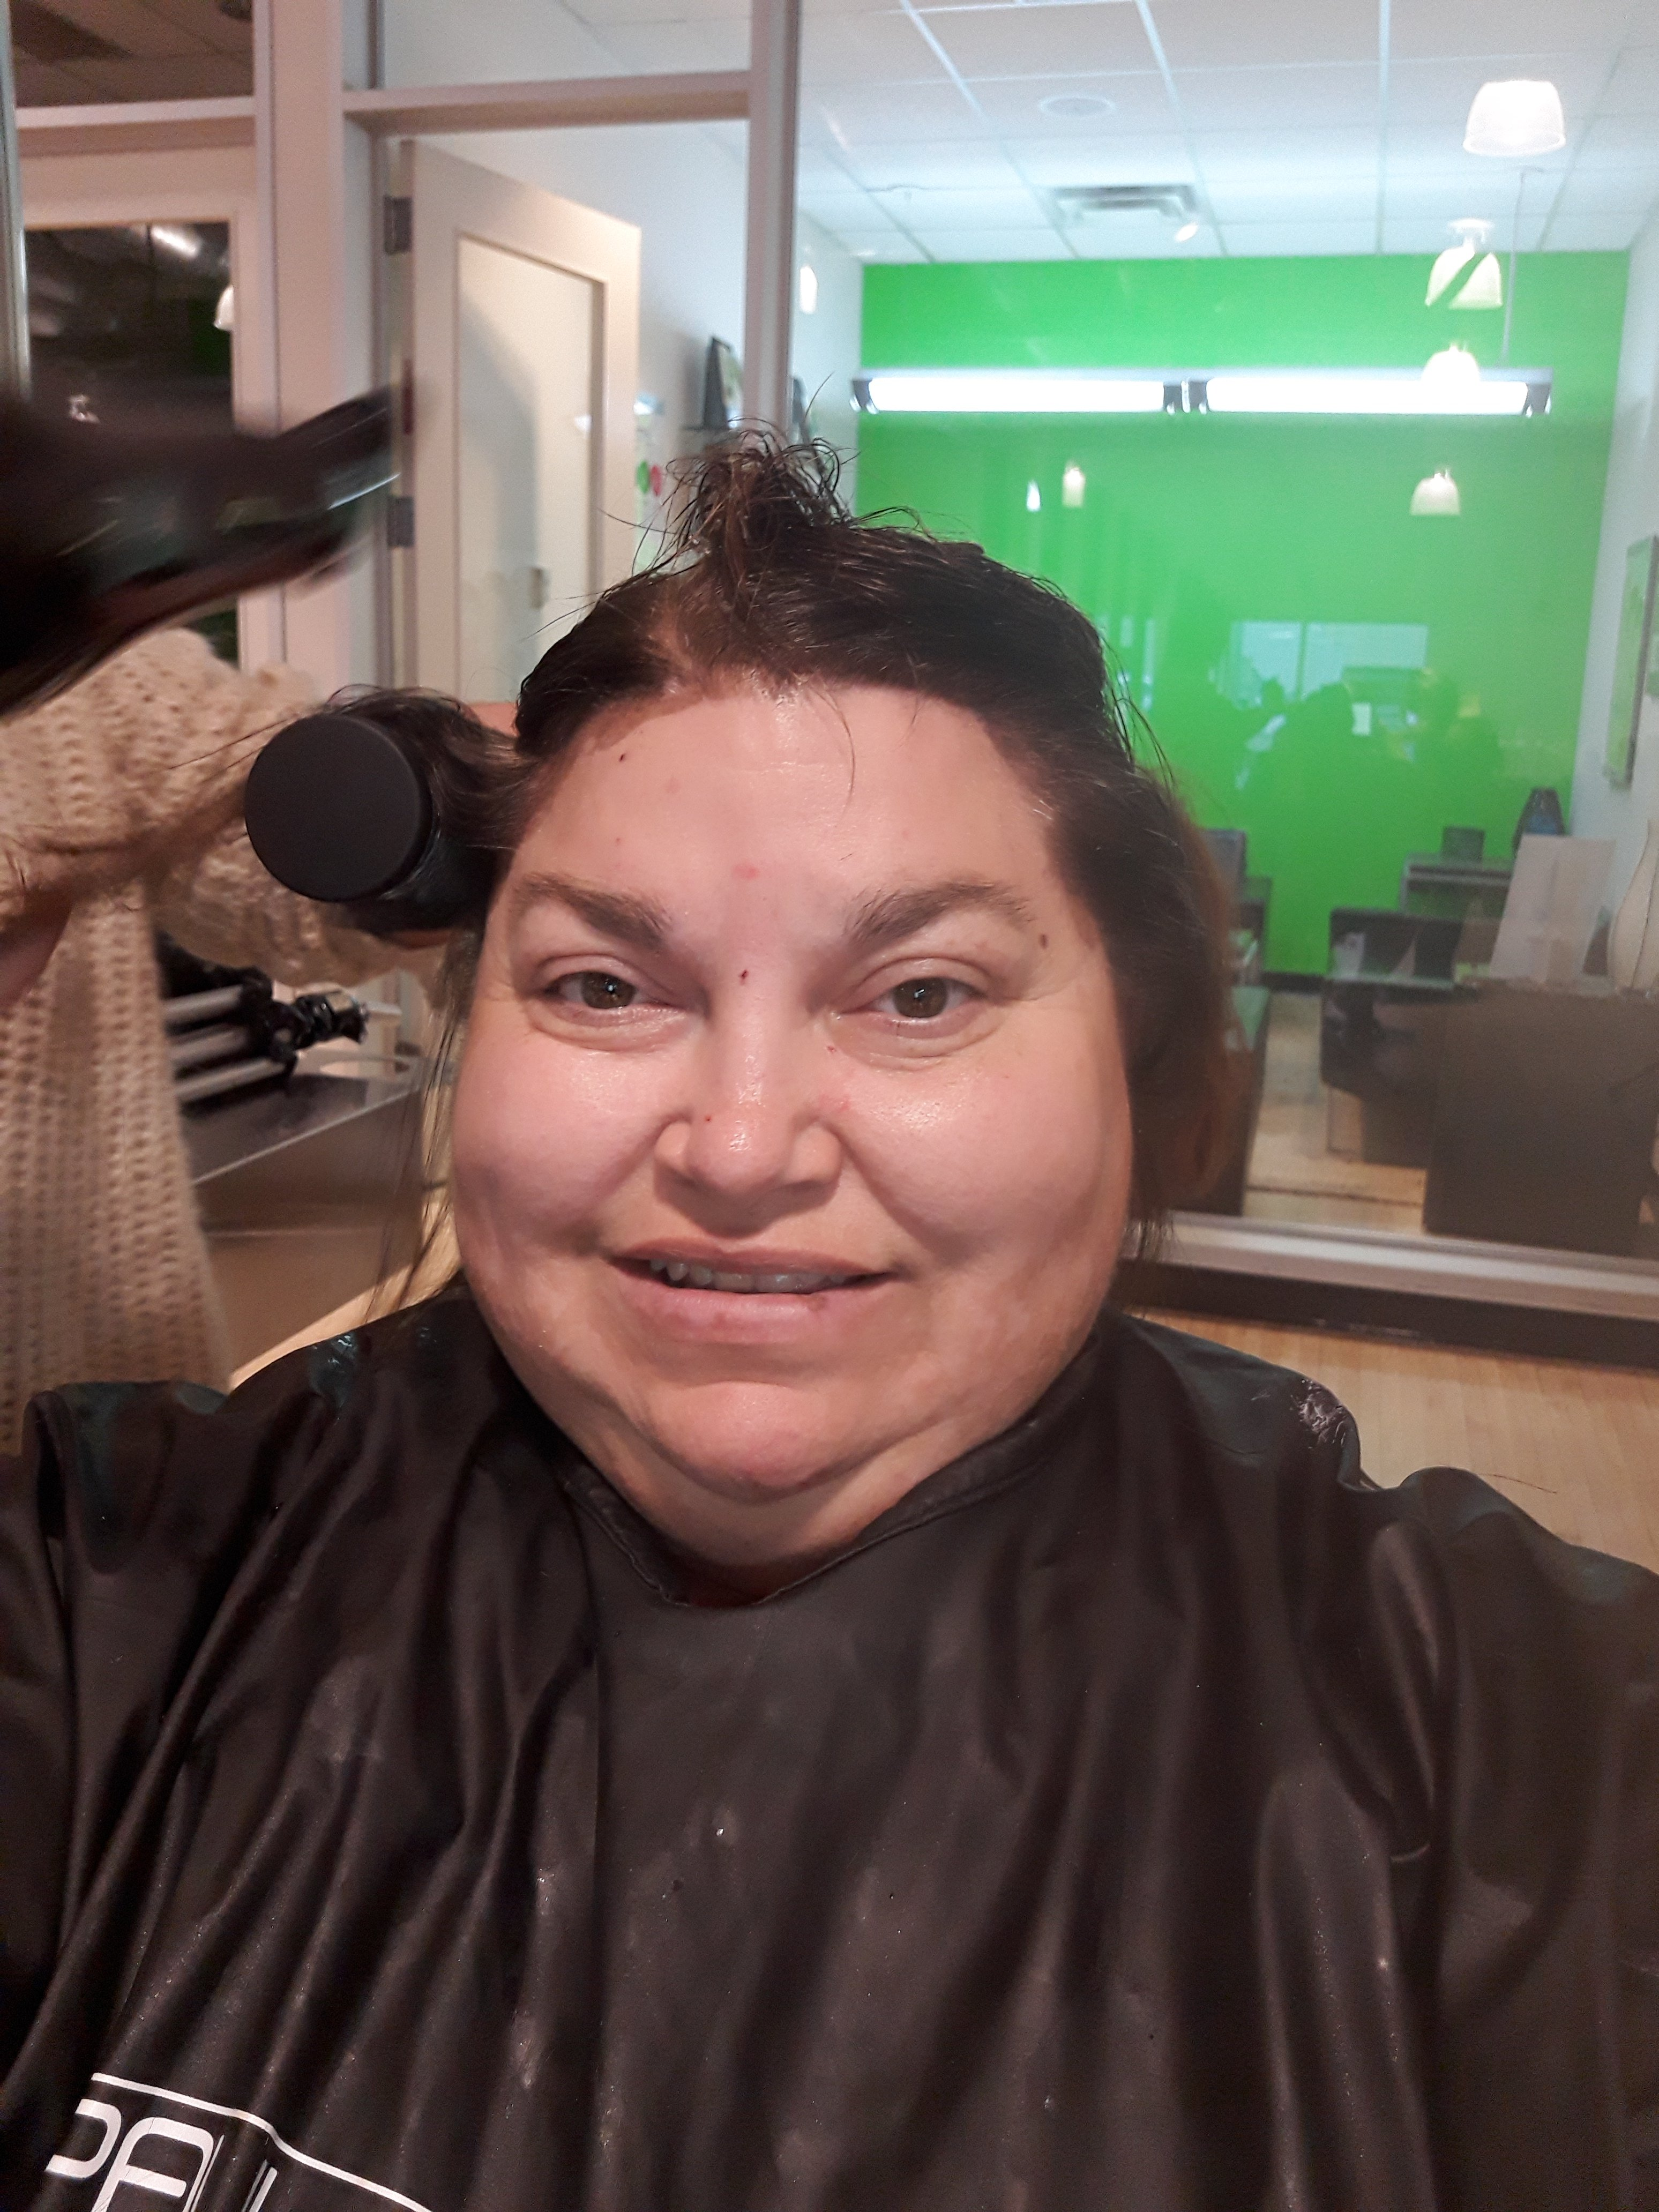 Kimberlee Plezia having her hair done at Paul Mitchell Studios in Colorado Springs, CO